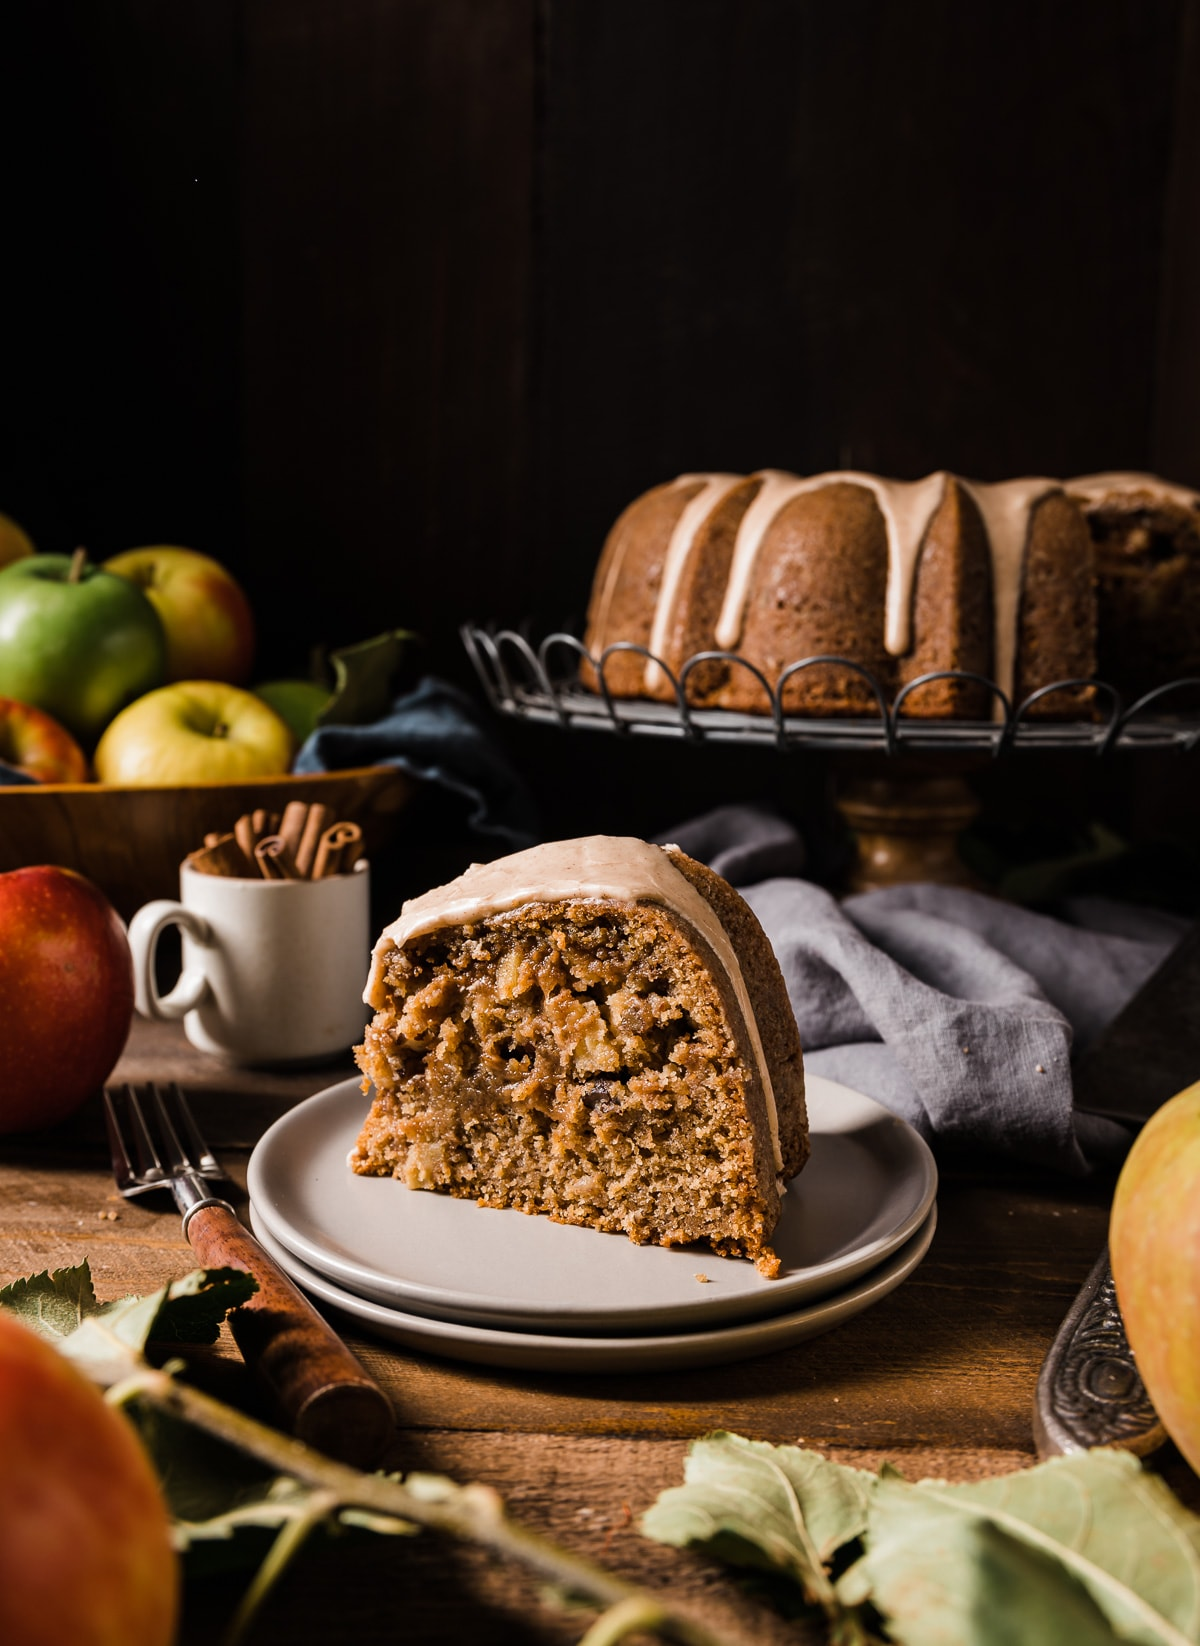 slice of brown sugar bundt cake on a grey cake plate with whole cake in back on a wire cooling rack bowl of apples bowl of cinnamon sticks